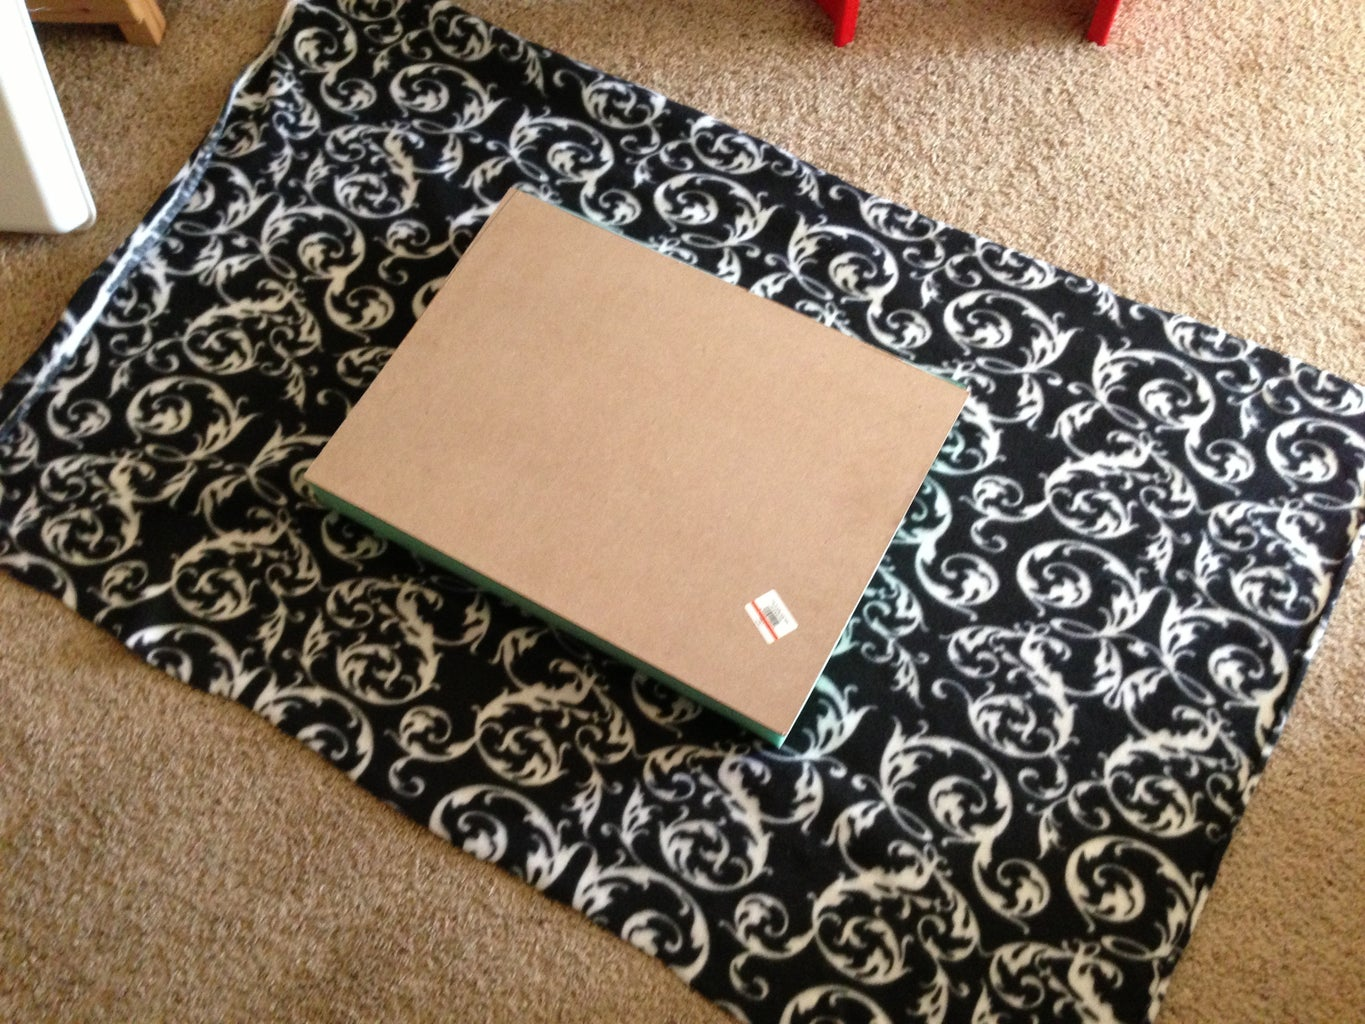 Cut Fabric to Size, Then Staple to the MDF